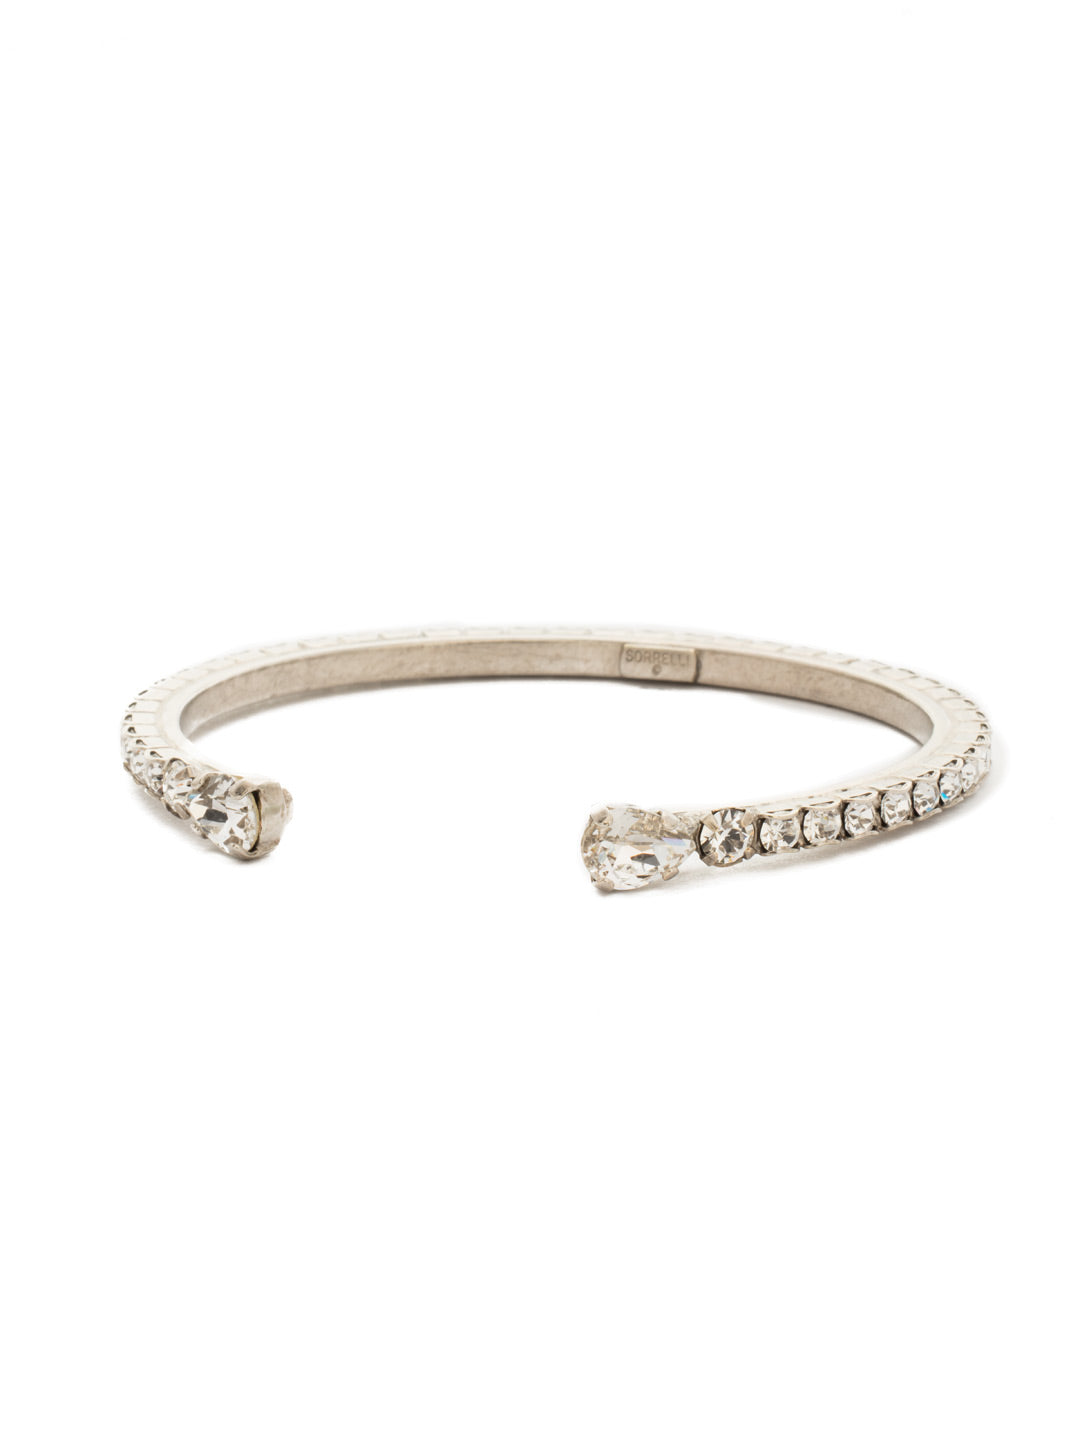 Open Ended Cuff Bracelet - BDP16ASCRY